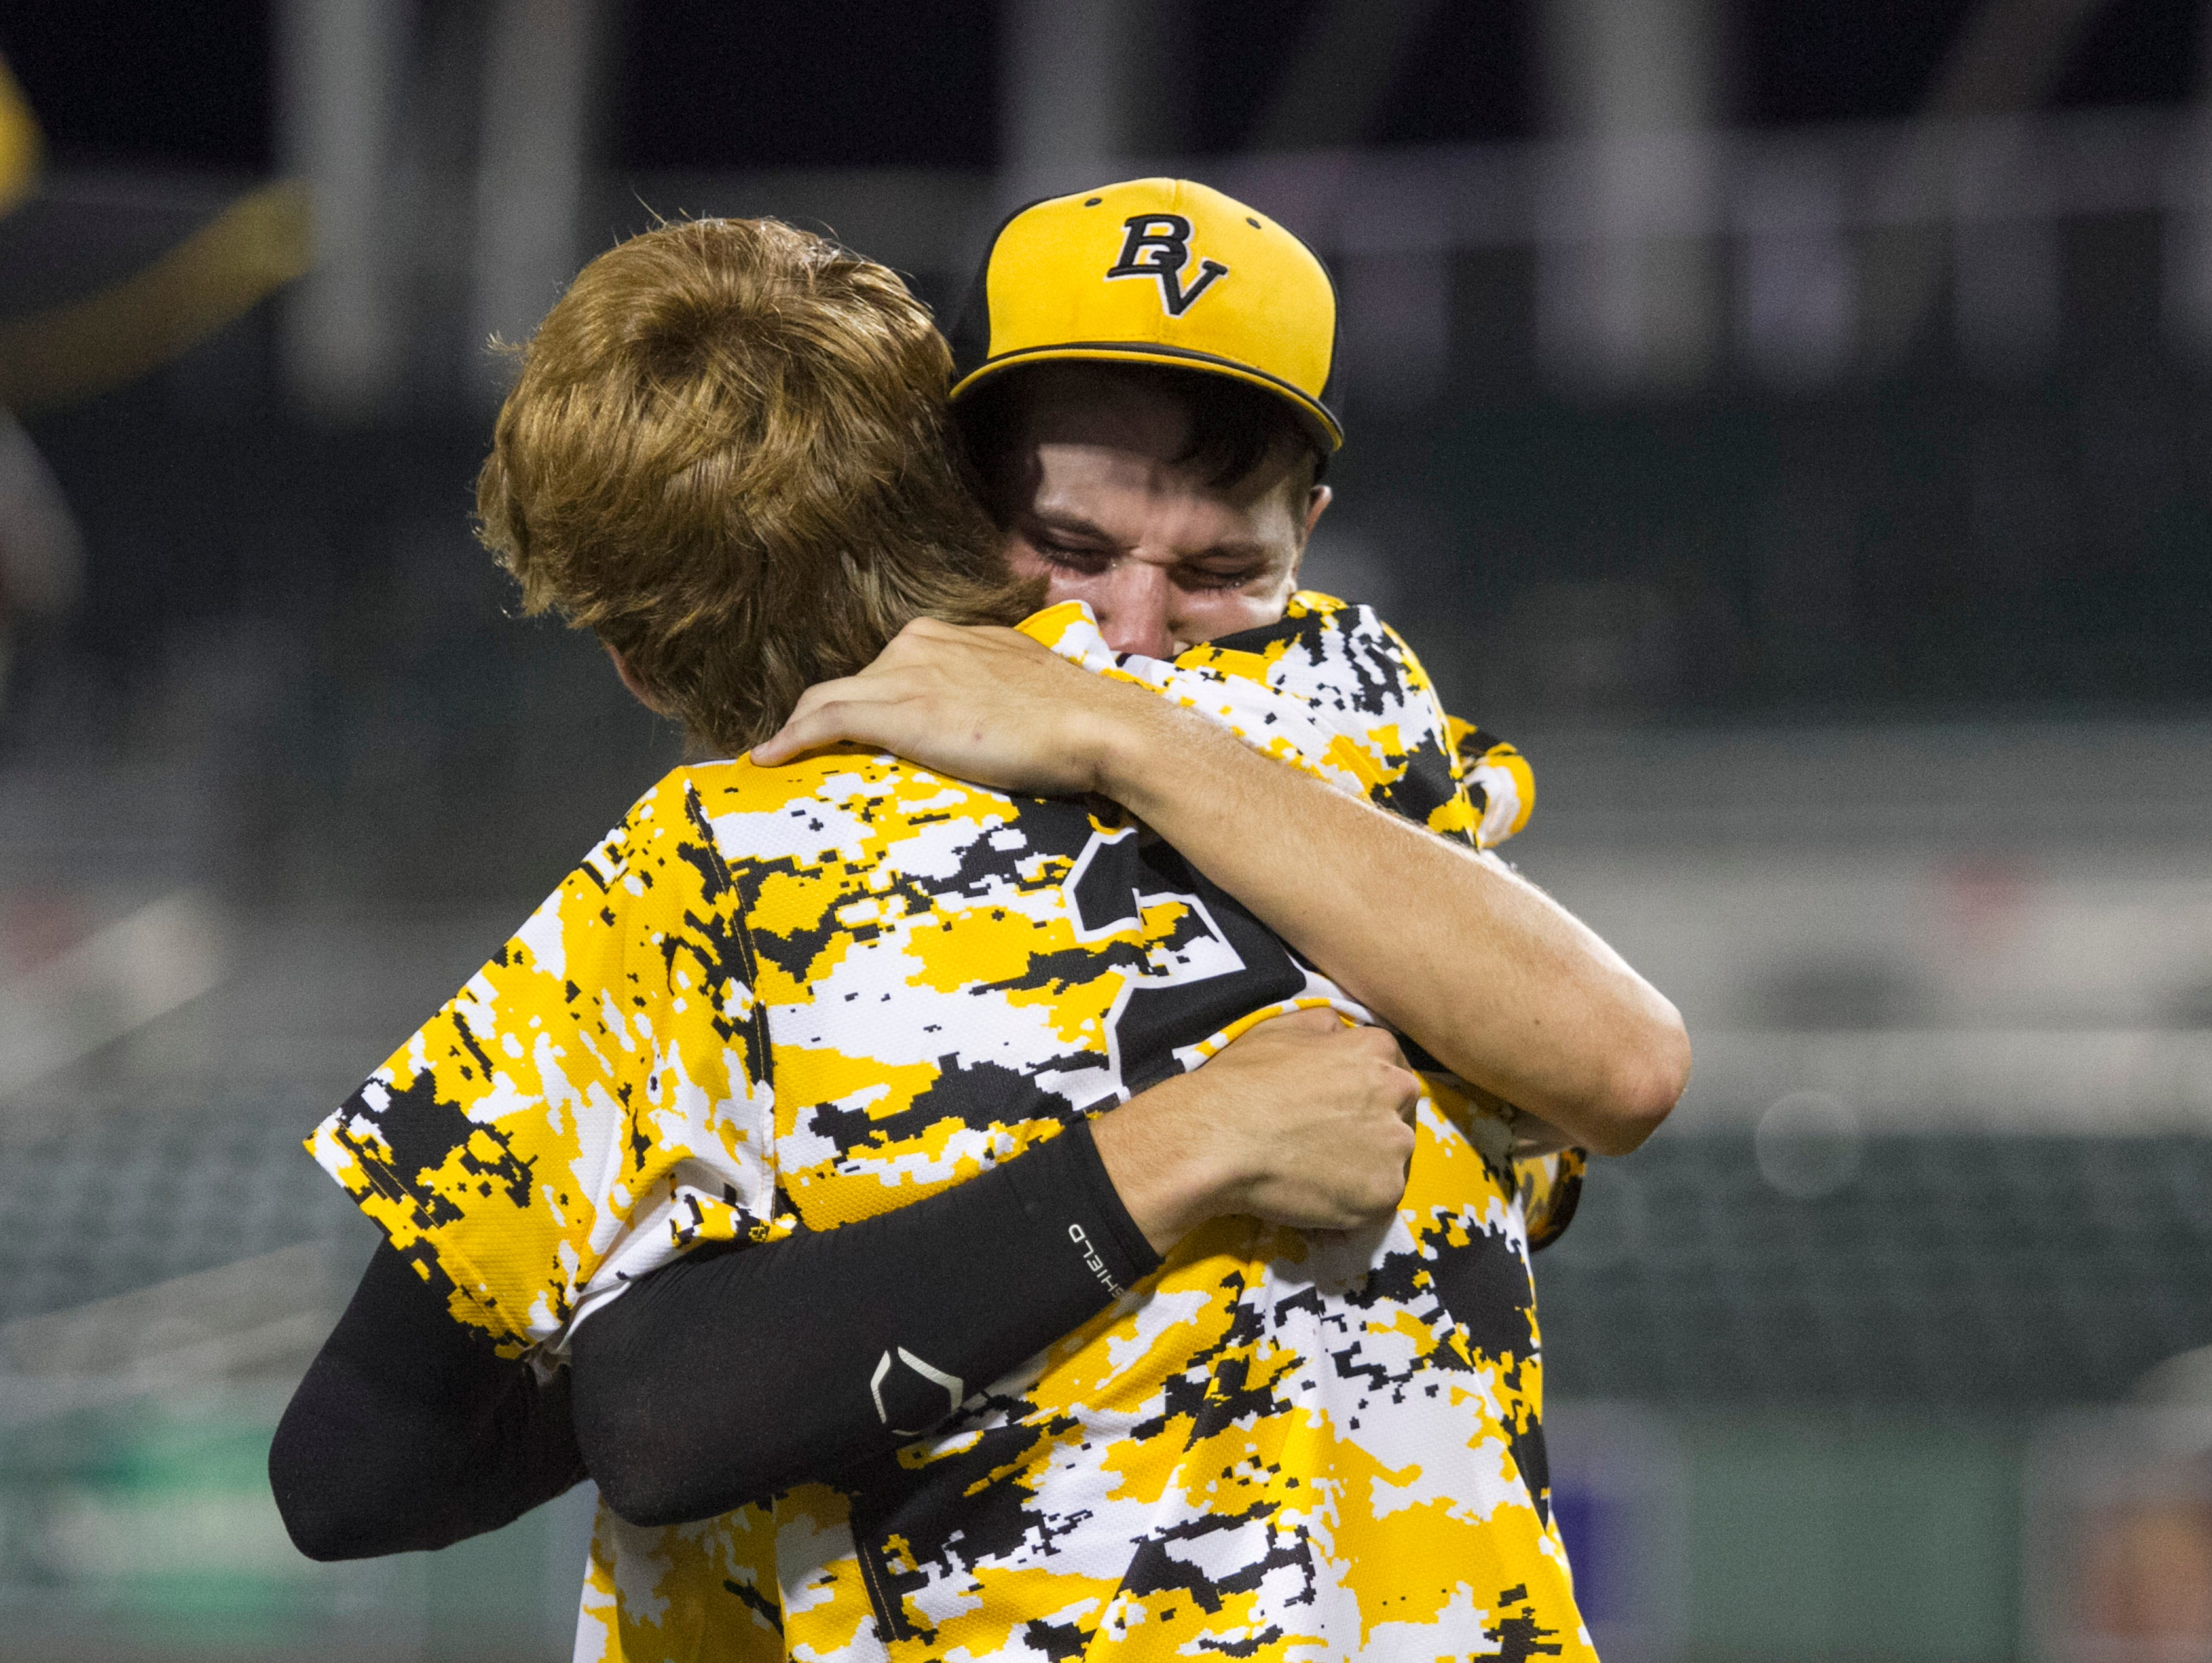 Bishop Verot's Thaddeus Ward and Trevor Cramer console each other after losing to Jacksonville Trinity Christian in the Class 4A State Baseball final on Tuesday, May 19, 2015, at JetBlue Park in south Fort Myers.